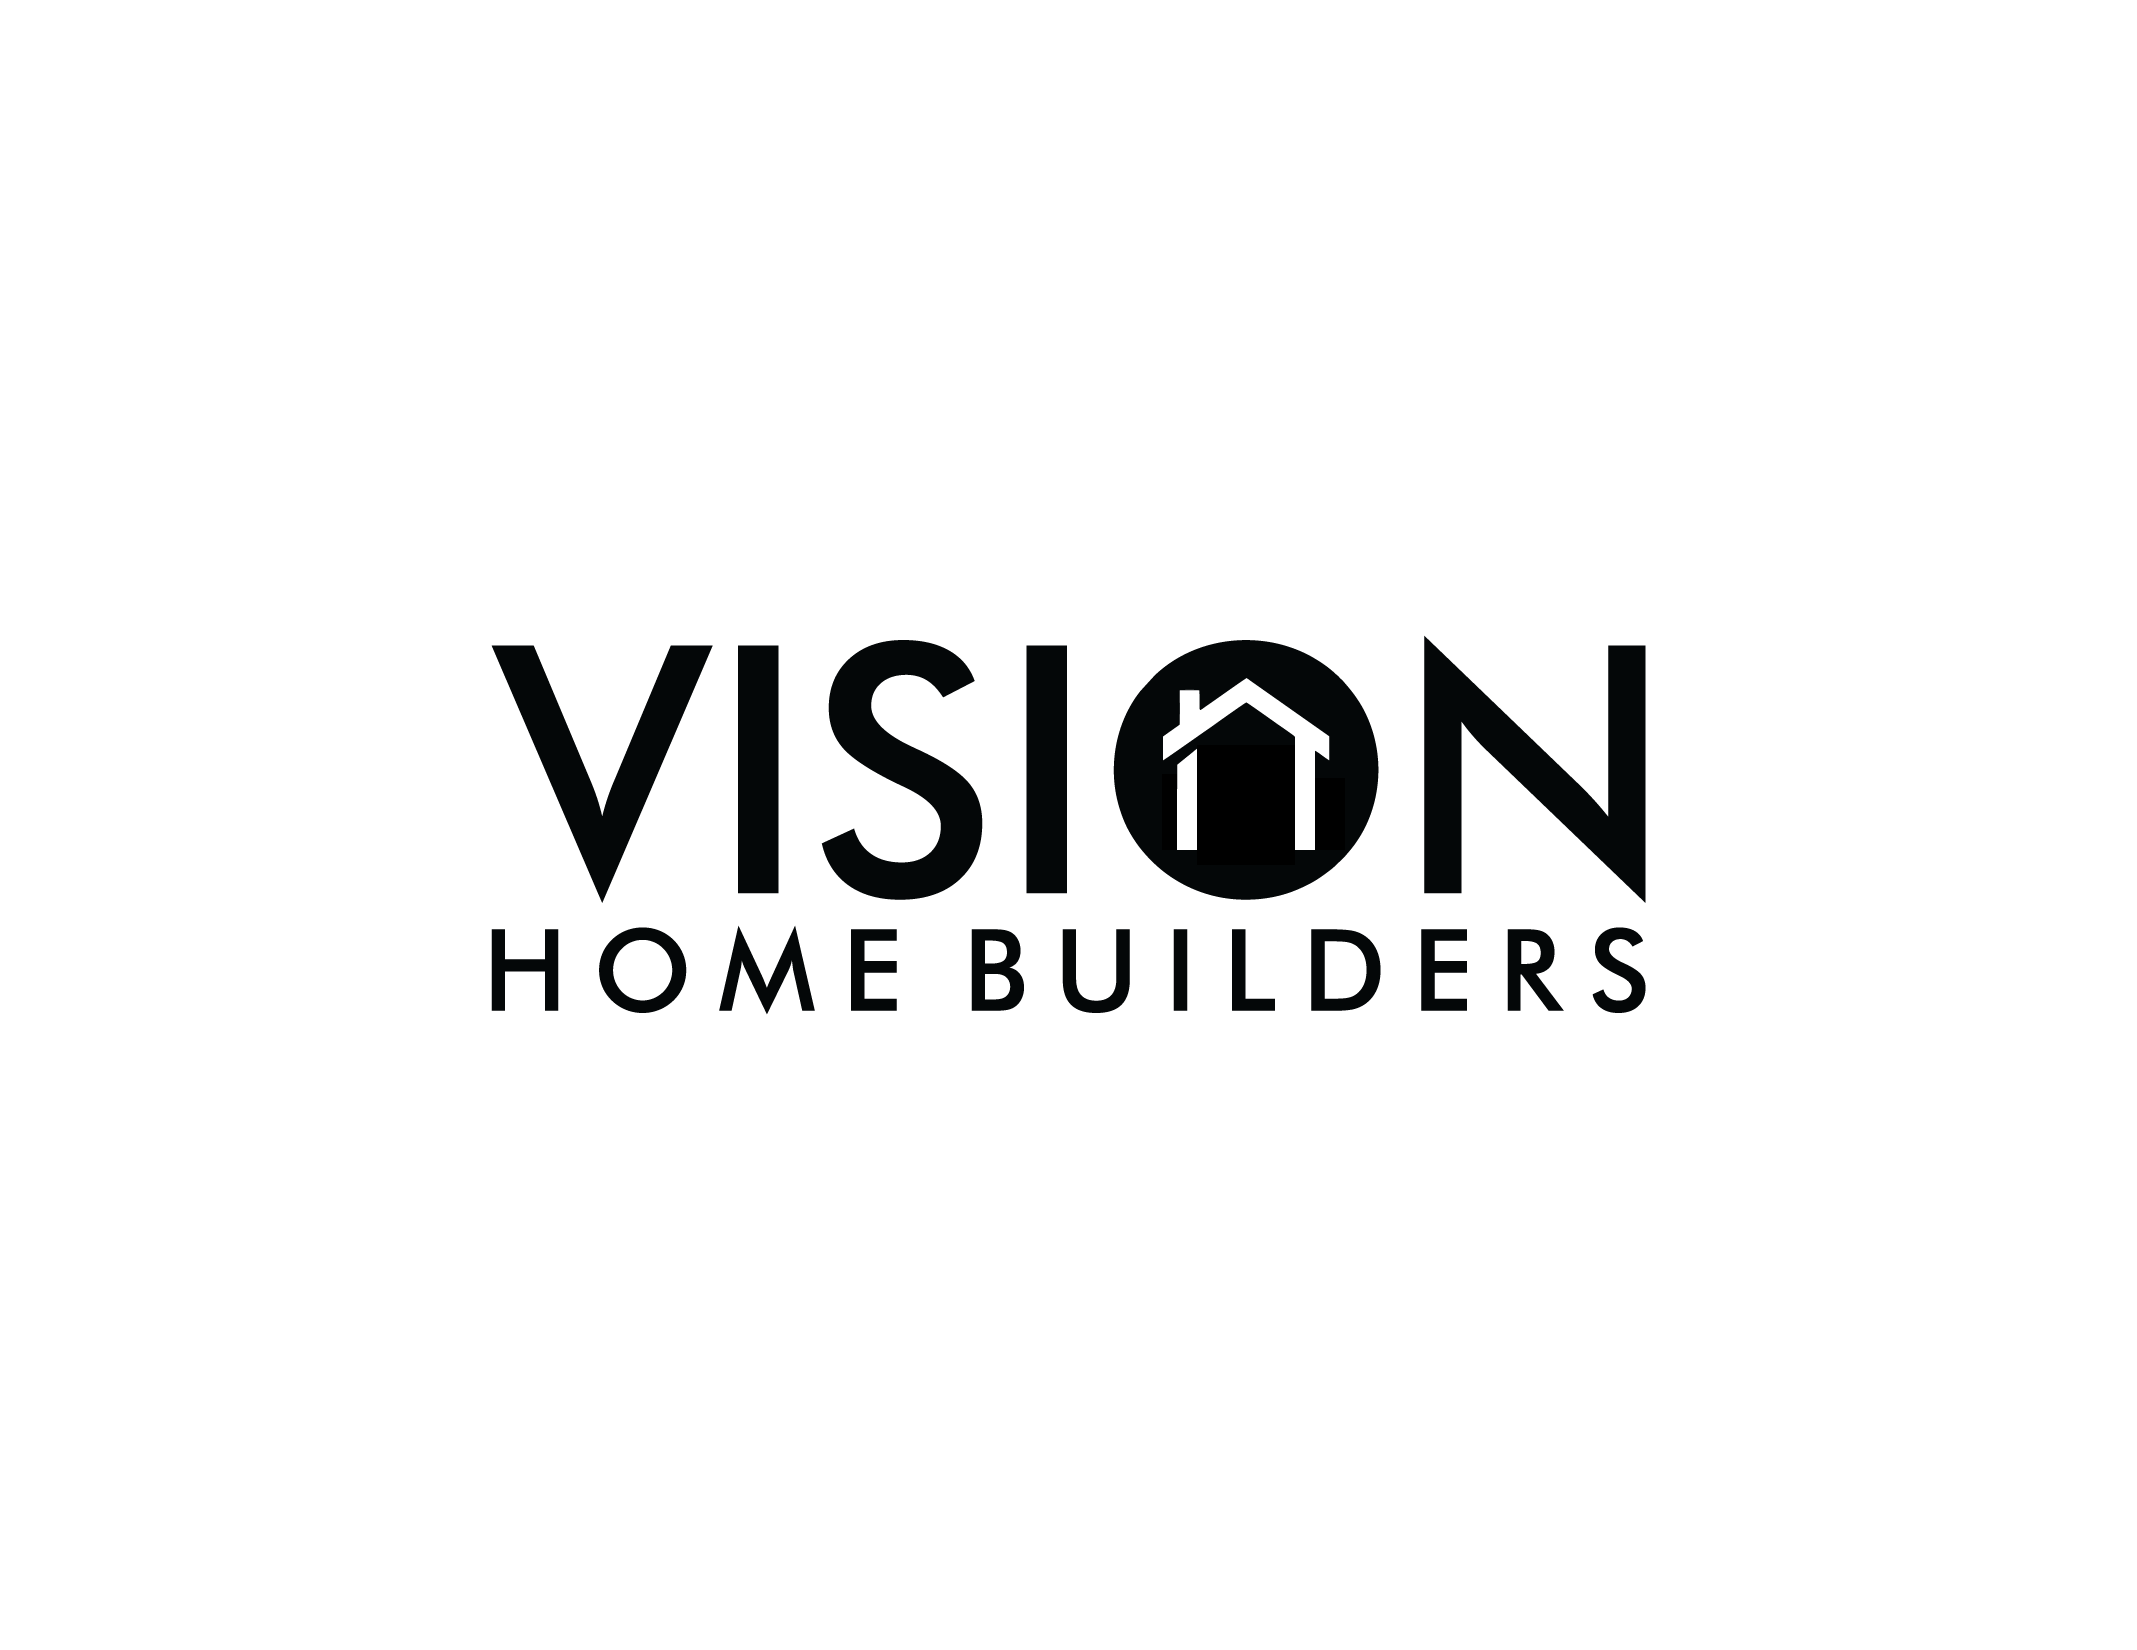 Vision PNG